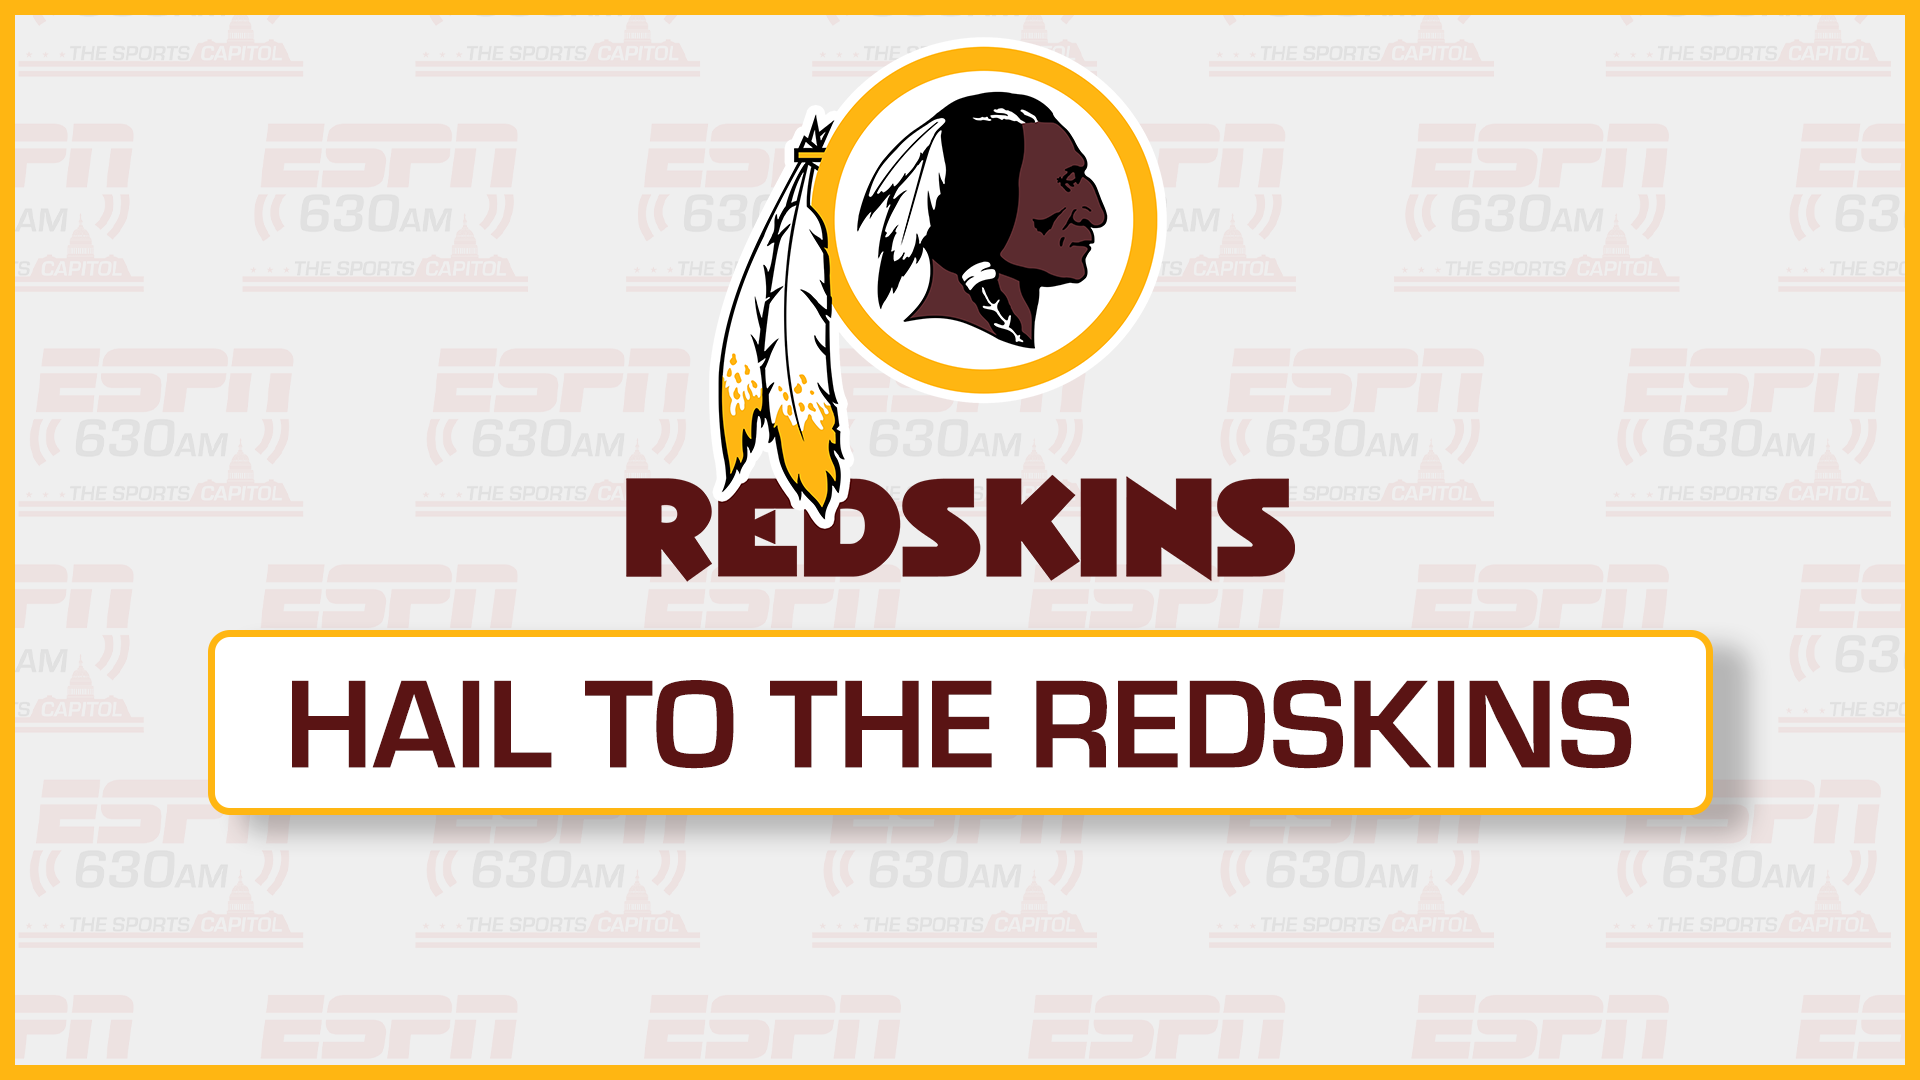 REDSKINS 16X9 P1 bumped up